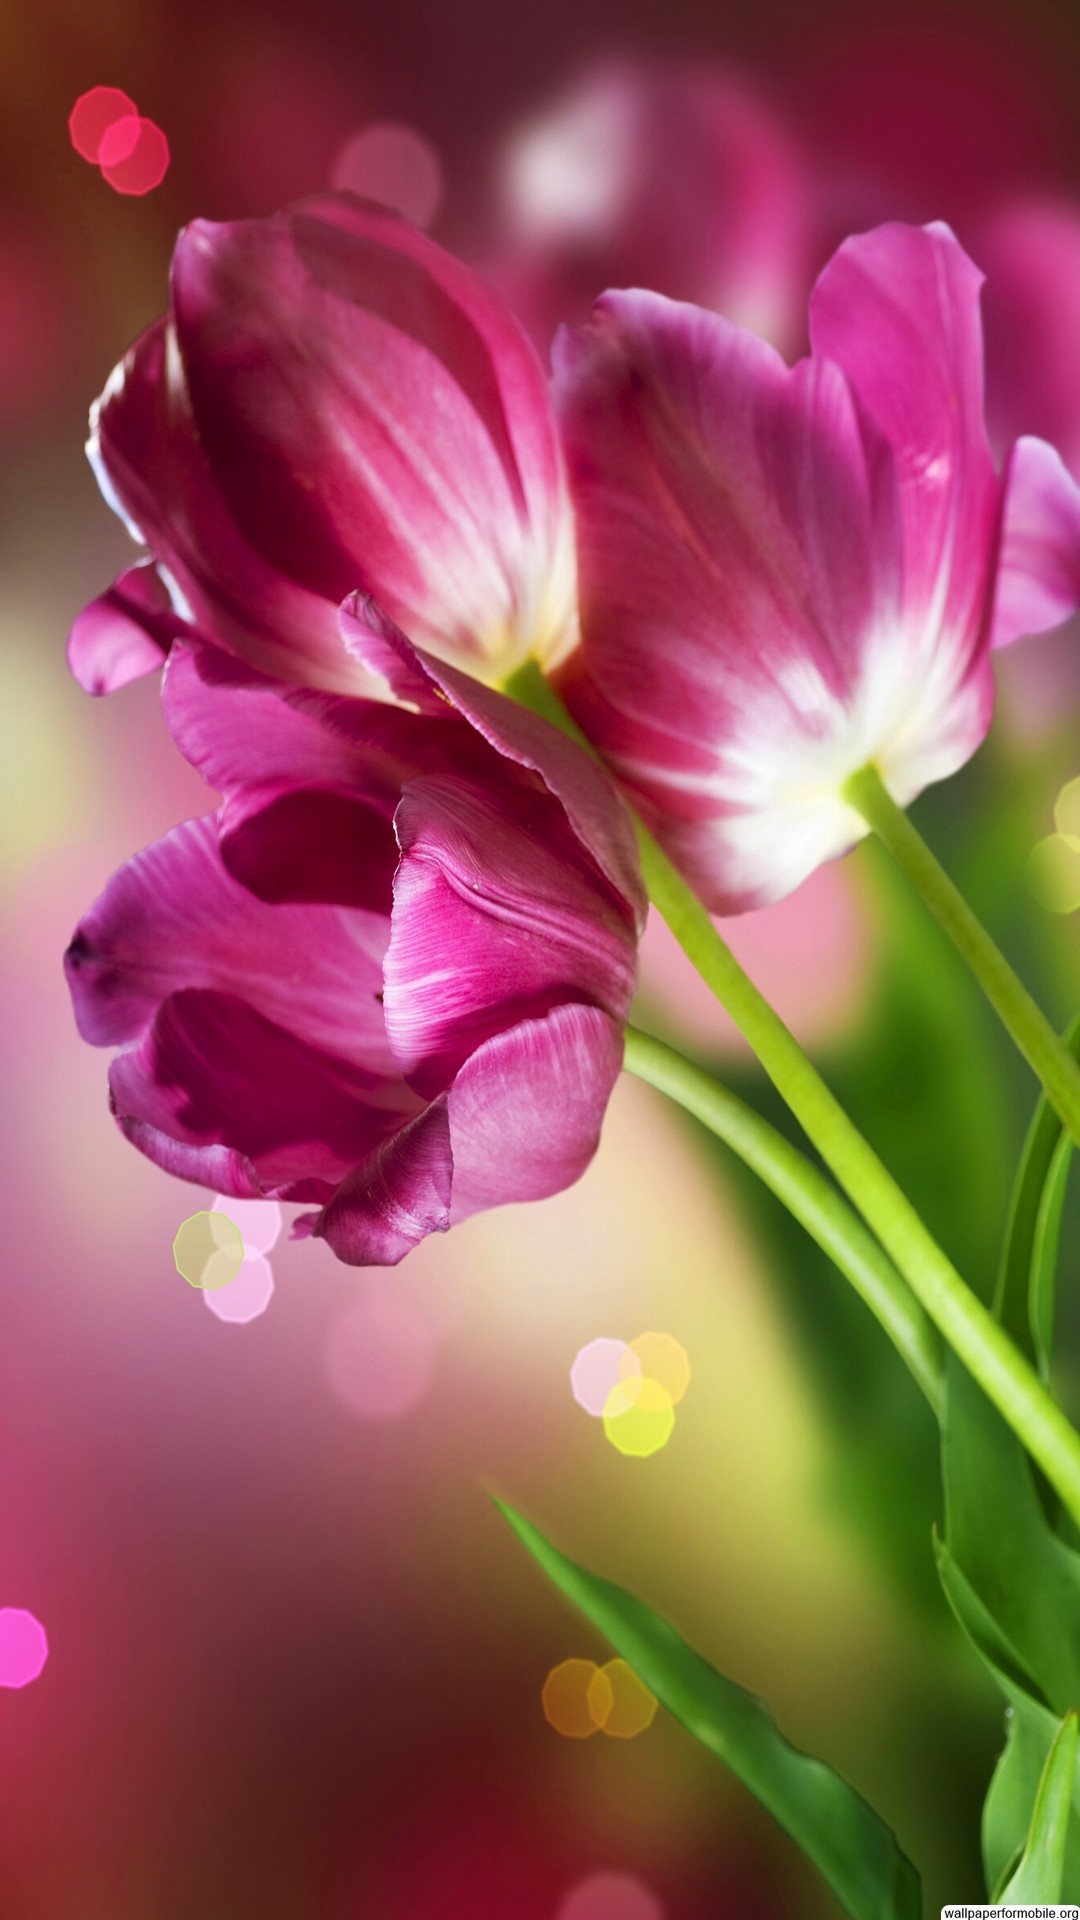 Pictures of beautiful flowers wallpapers wallpapertag - Beautiful flower images wallpapers ...